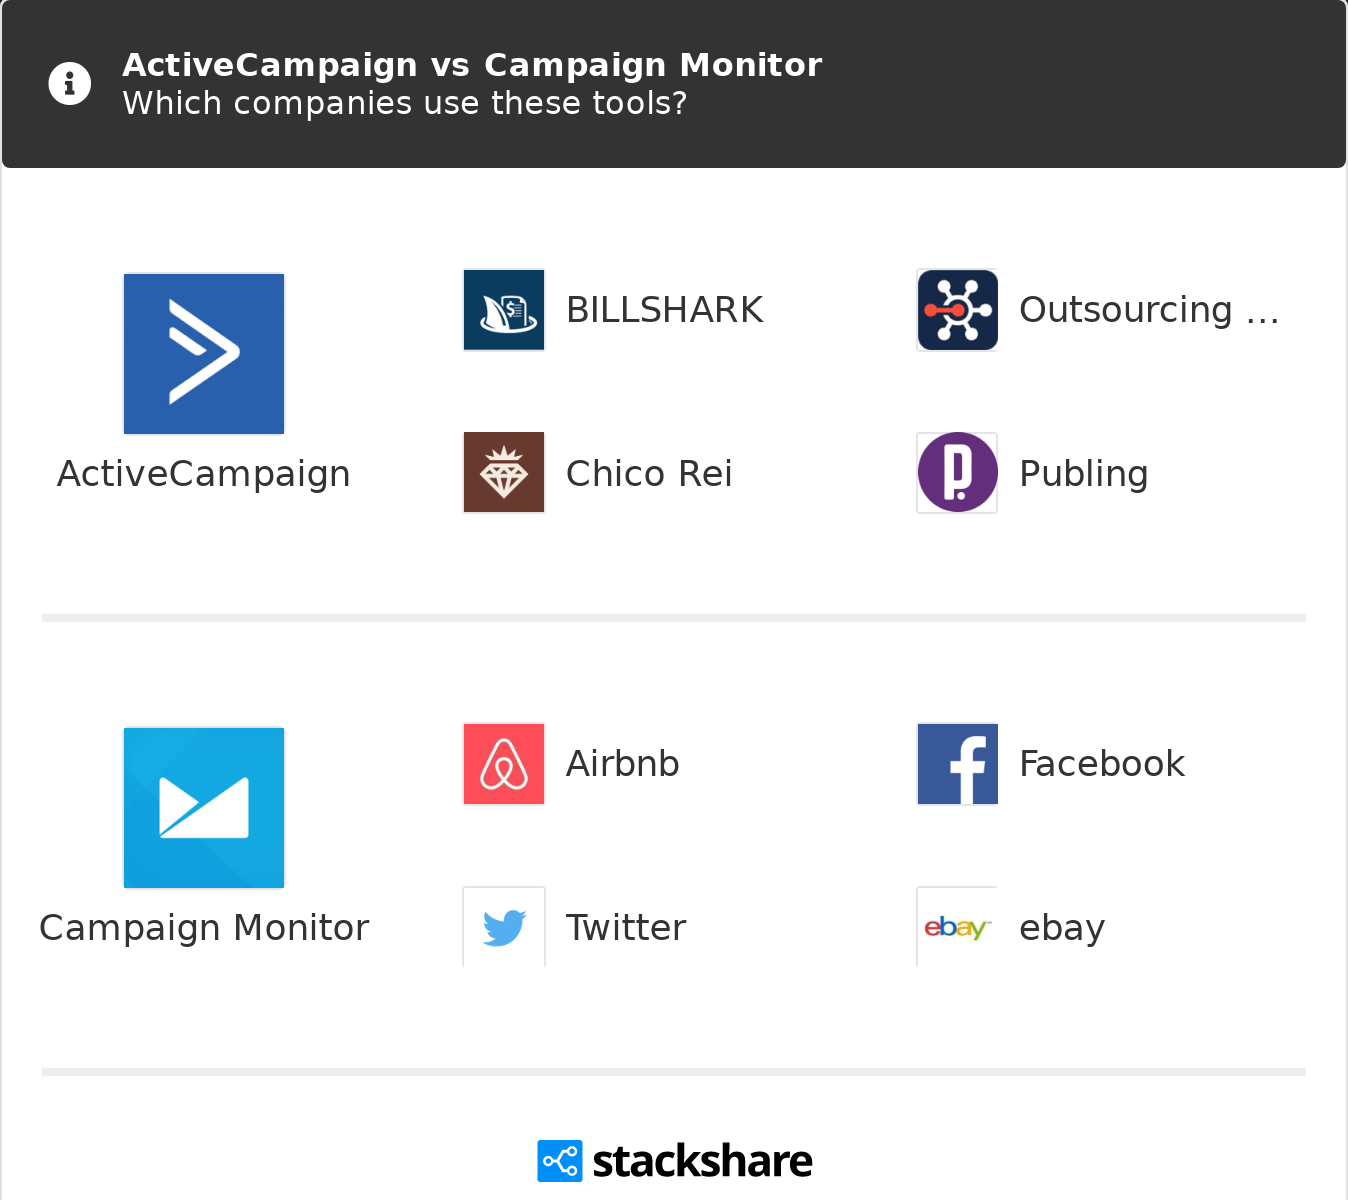 Get This Report on Constant Contact Vs Activecampaign